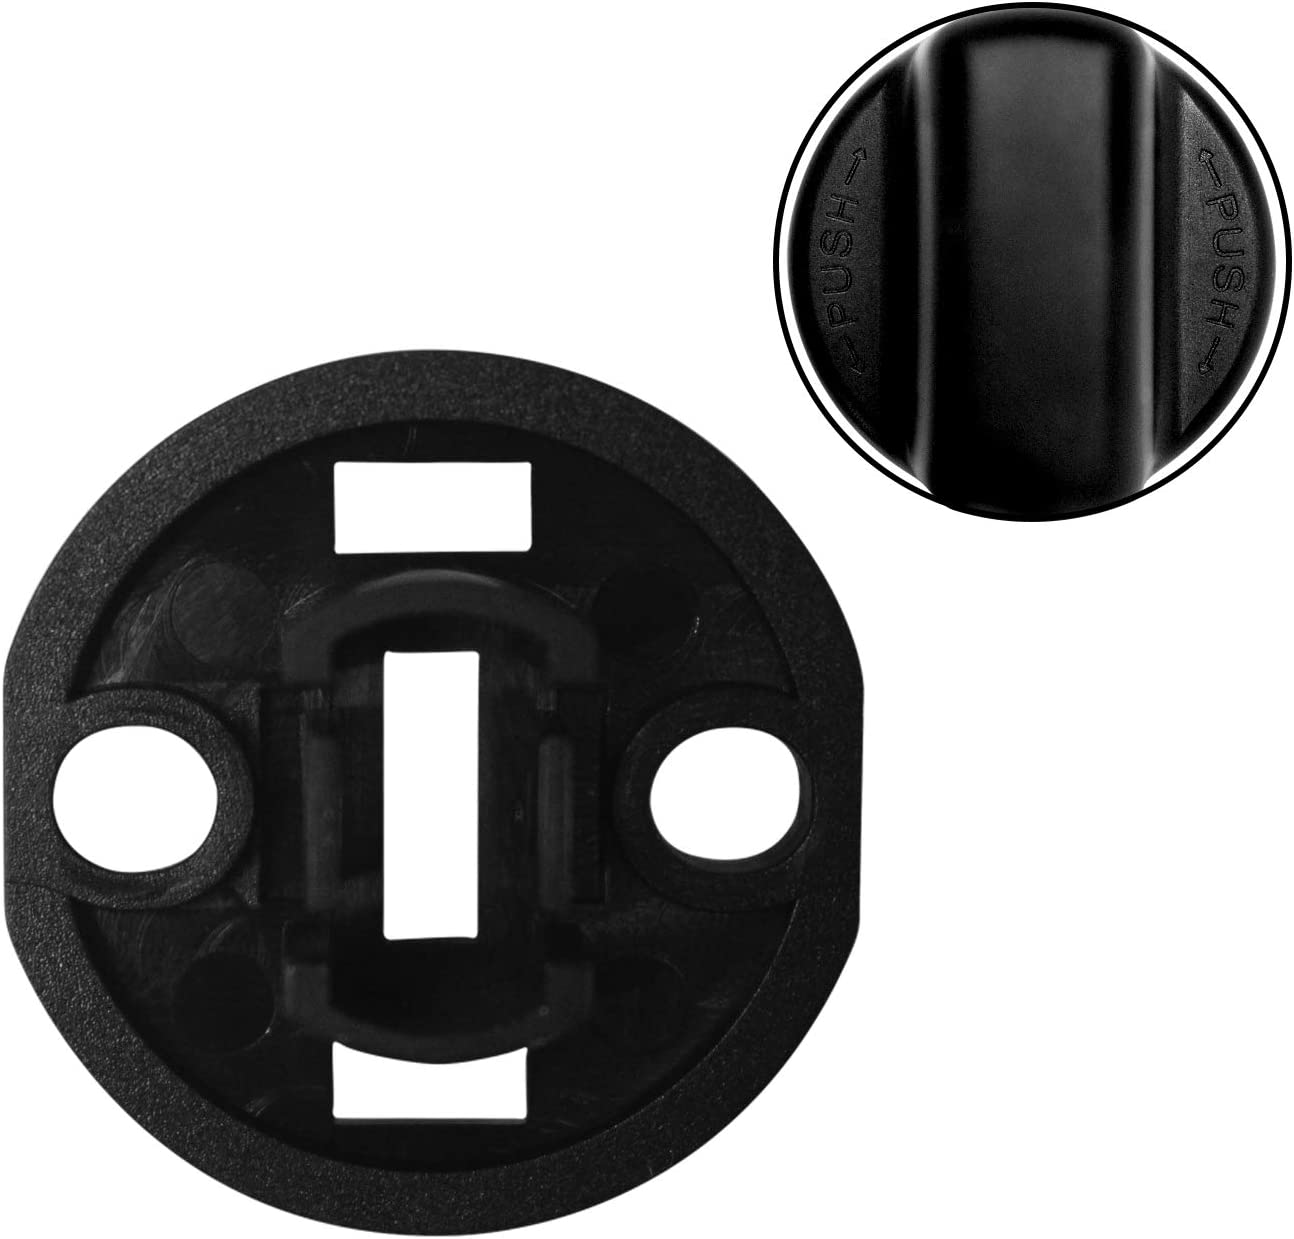 Travay Ignition Key Push Turn Knob and Ignition Switch Base for Mazda Speed 6 CX9 CX7 D6Y176142,D46166141A02 Keyless Entry